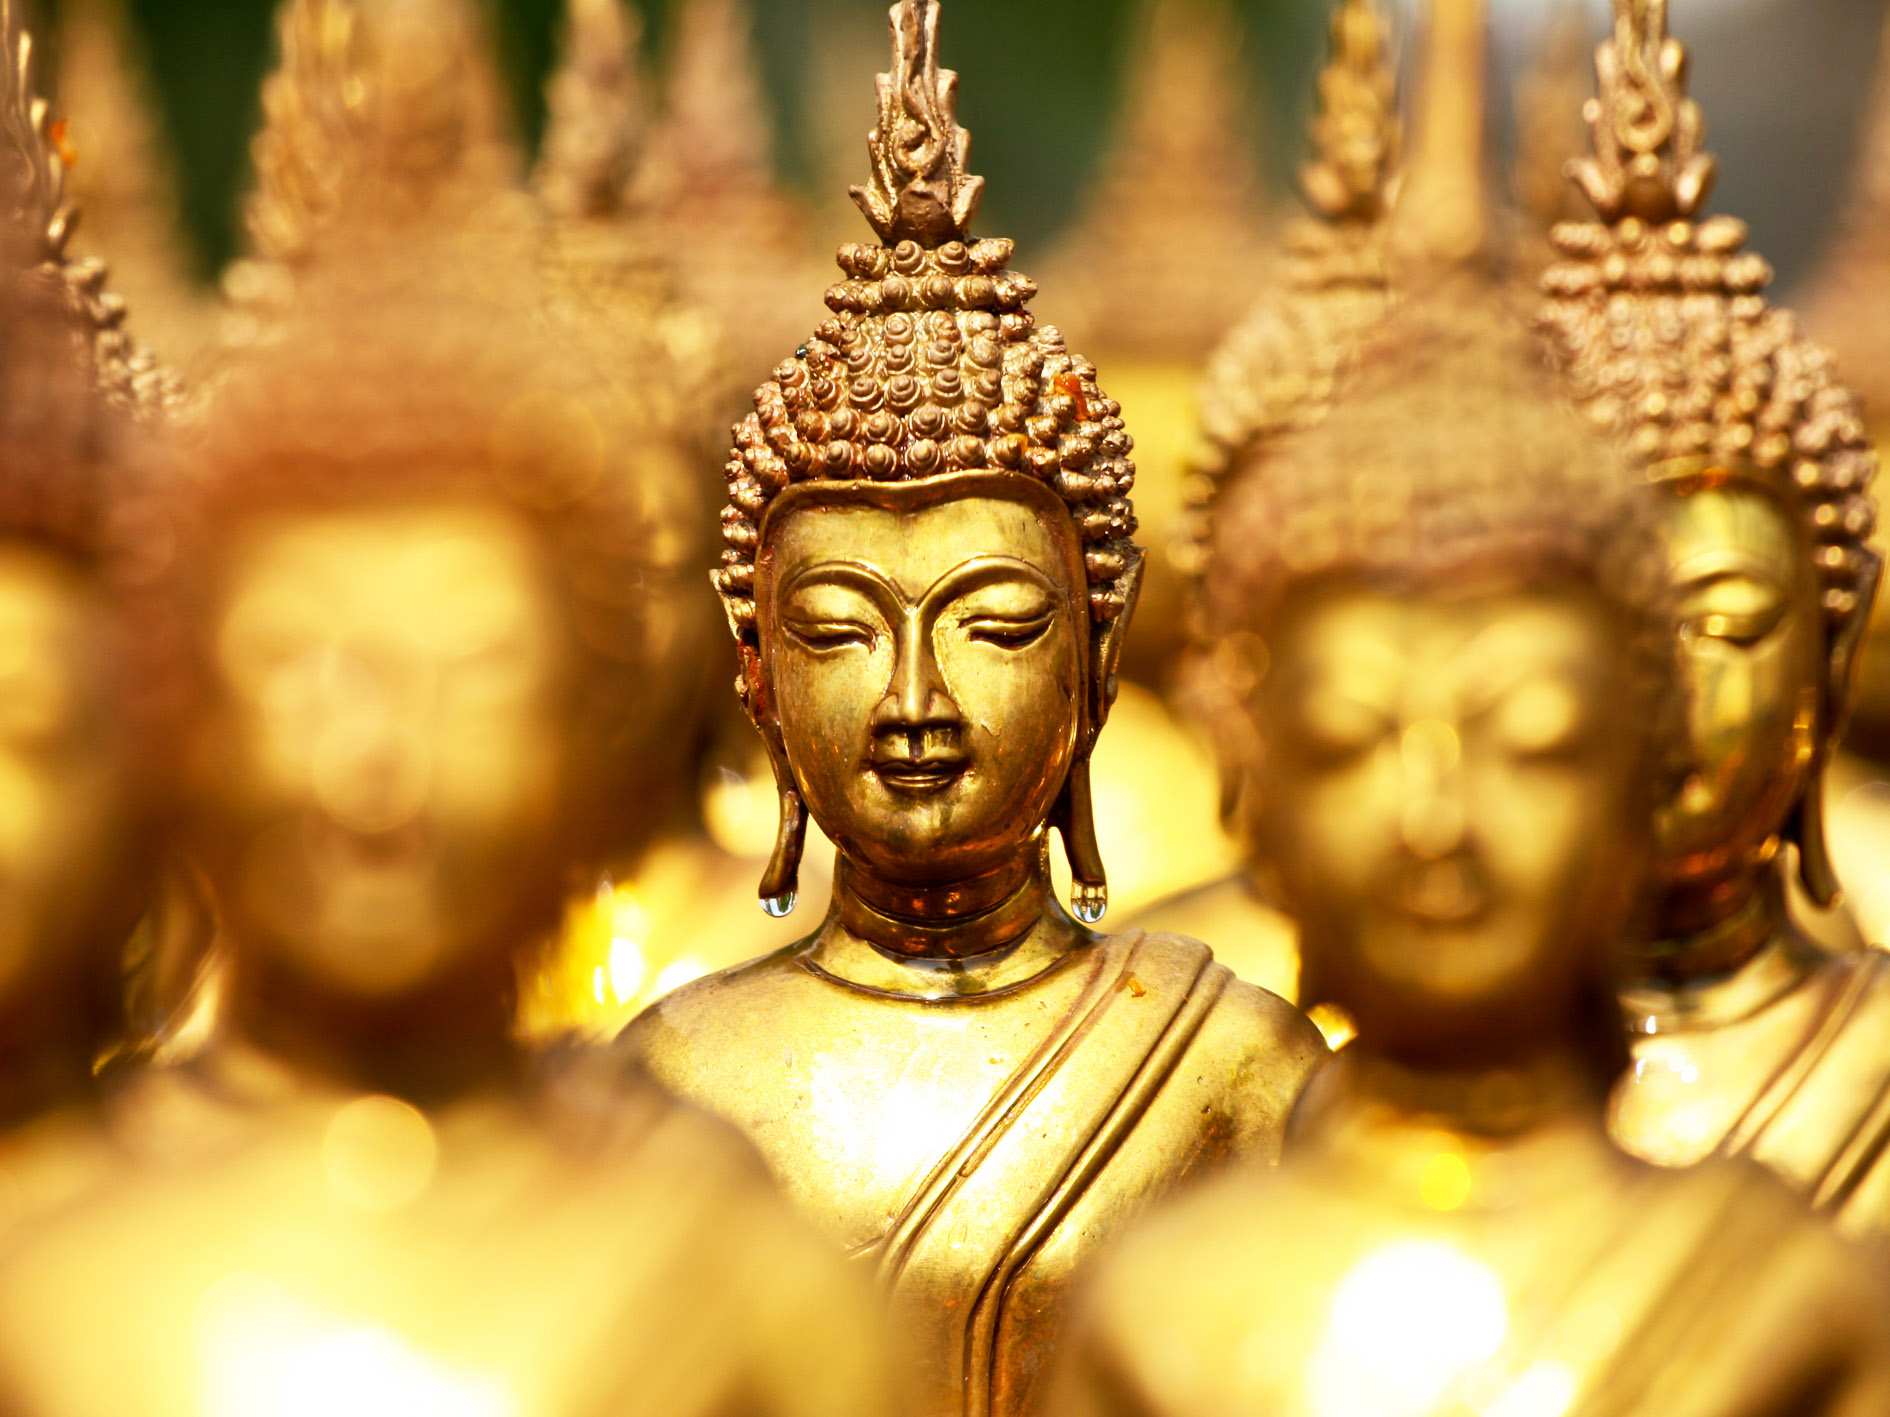 Buddhism forms the basis of religious festivities in Sri Lanka